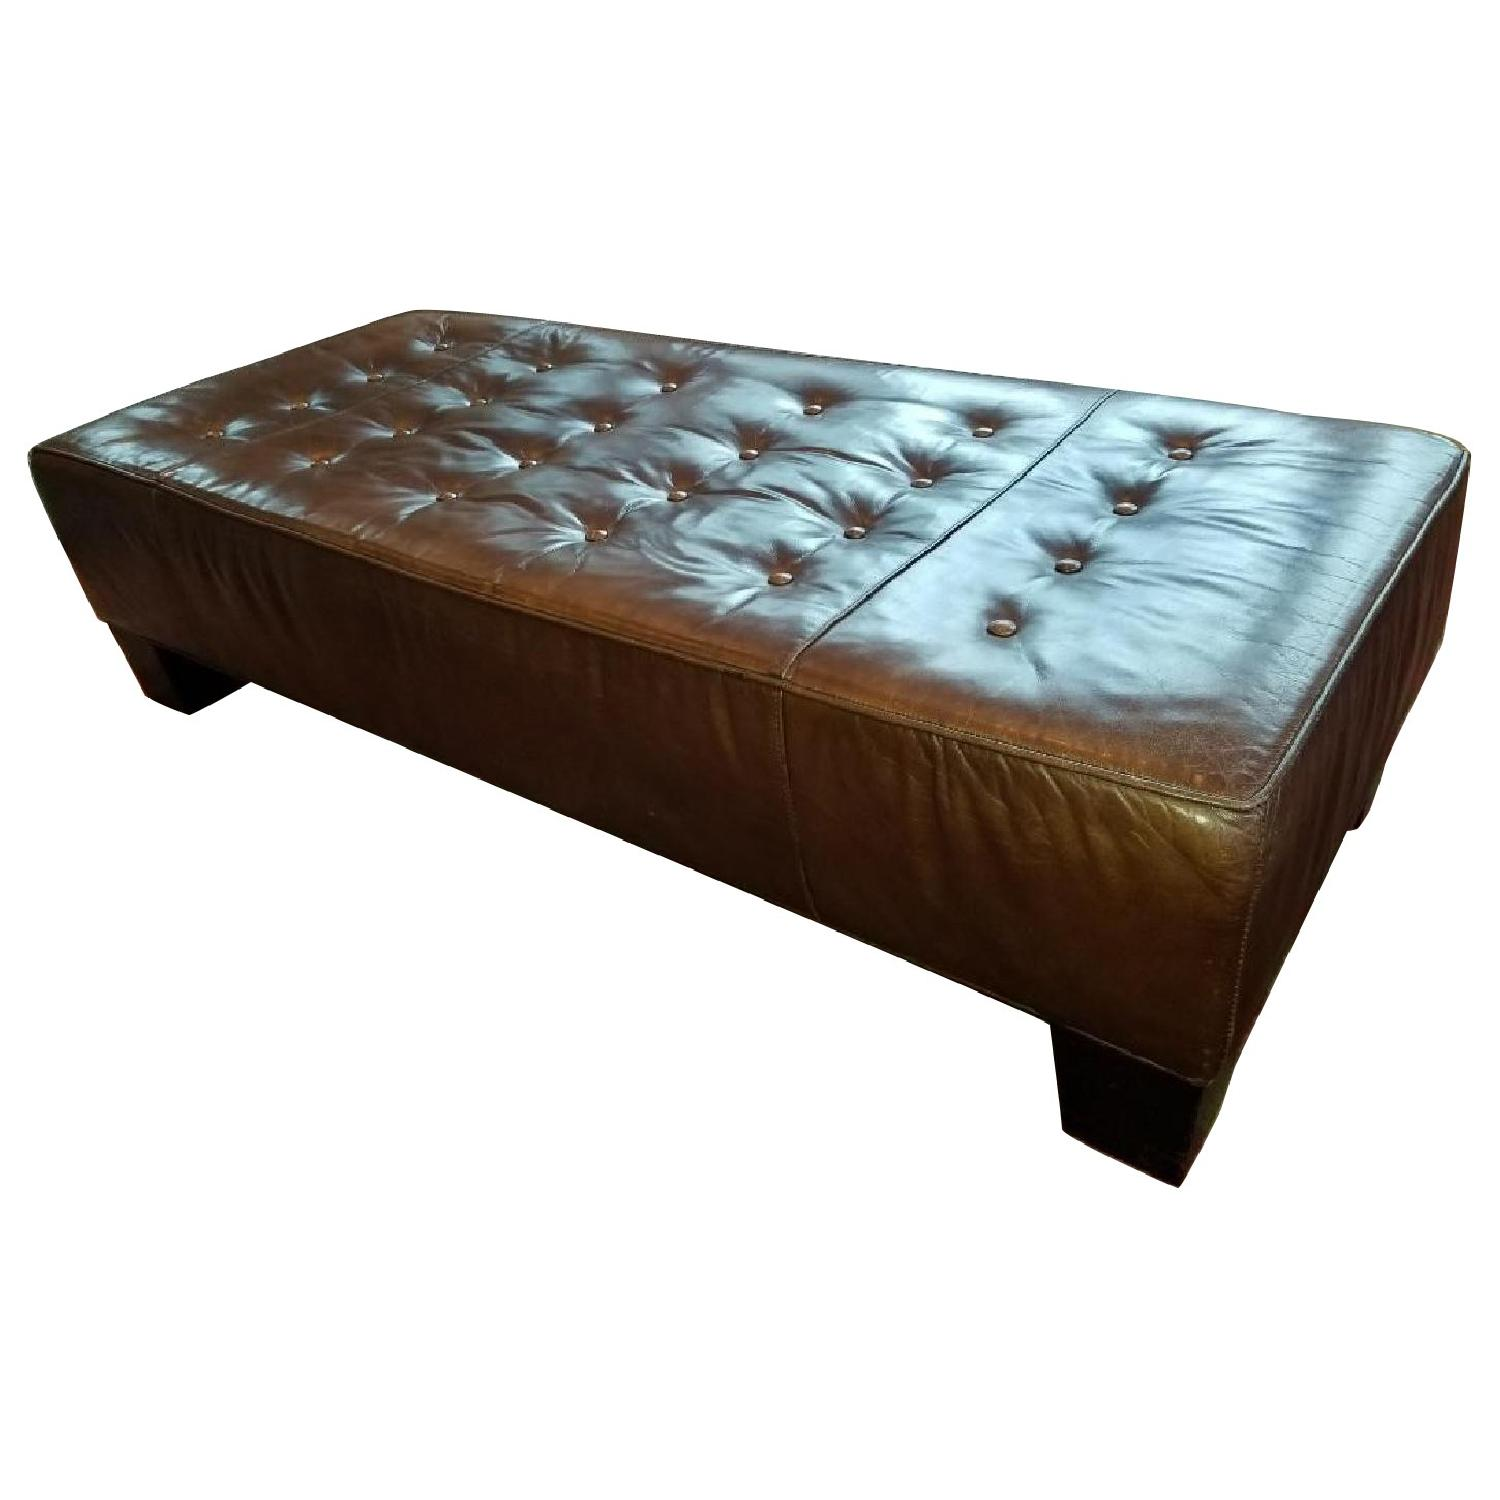 Restoration Hardware Tufted Leather Ottoman Coffee Table